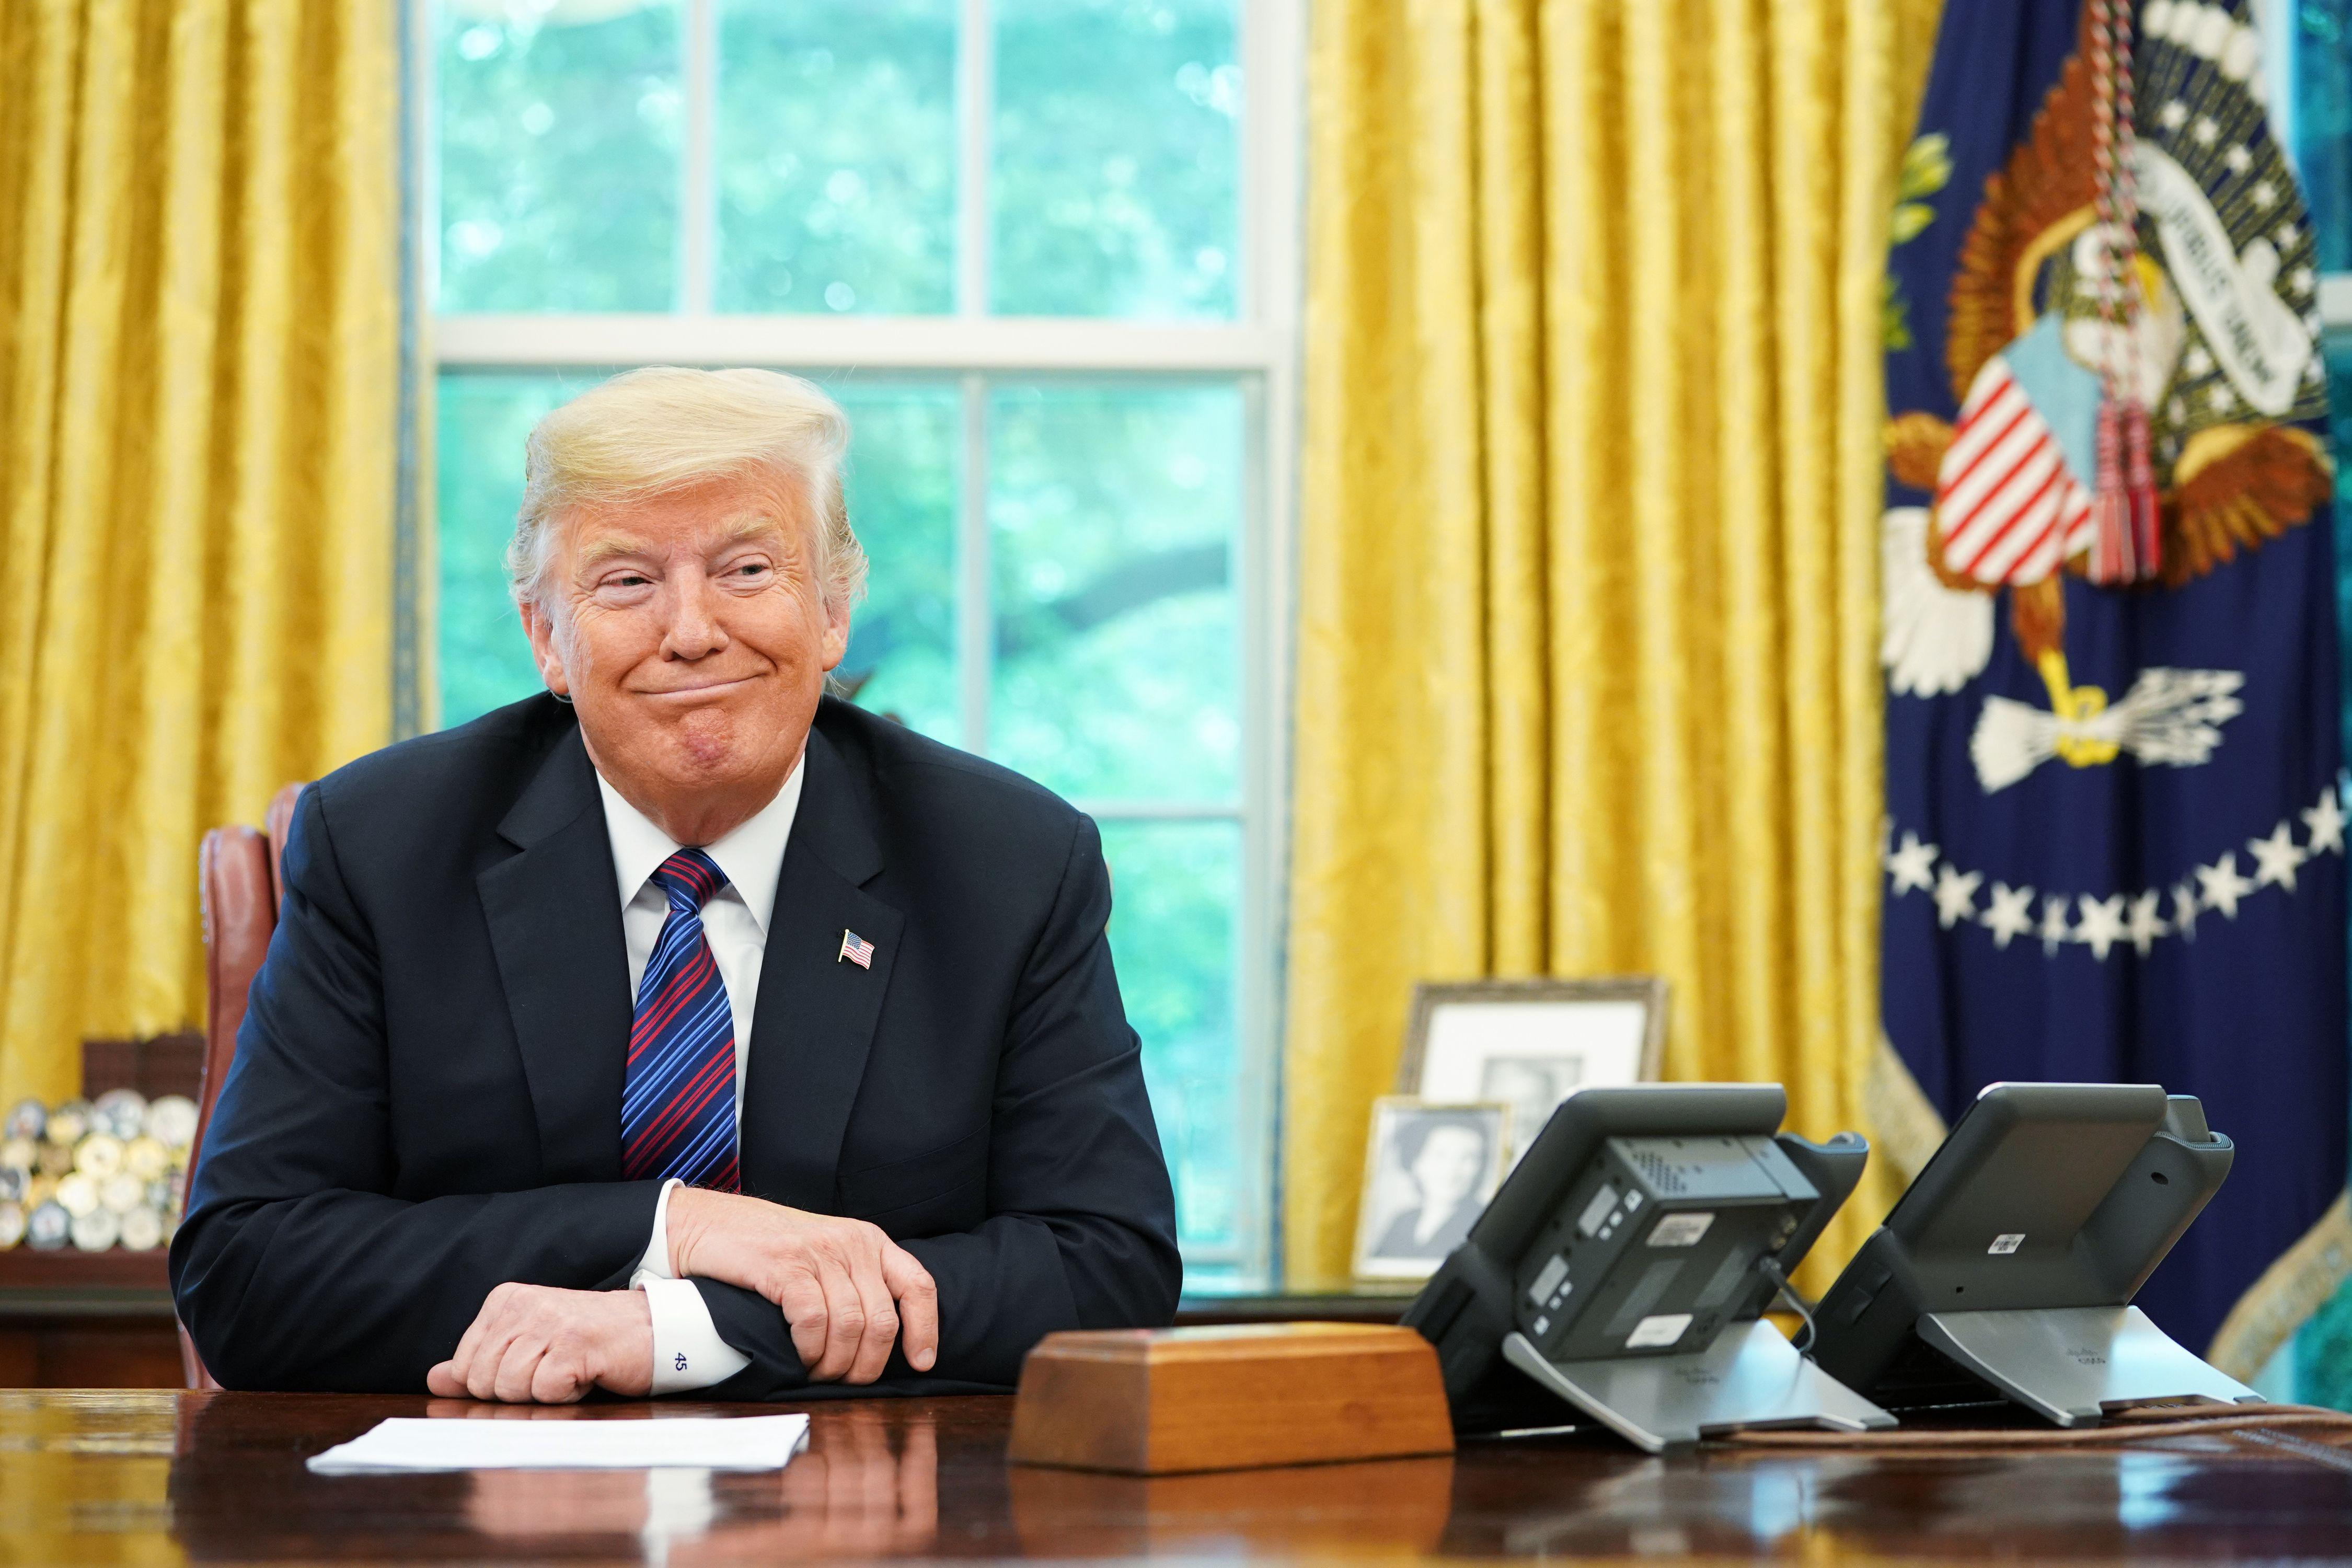 TOPSHOT - US President Donald Trump listens during a phone conversation with Mexico's President Enrique Pena Nieto on trade in the Oval Office of the White House in Washington, DC on August 27, 2018. - President Donald Trump said Monday the US had reached a 'really good deal' with Mexico and talks with Canada would begin shortly on a new regional free trade pact.'It's a big day for trade. It's a really good deal for both countries,' Trump said.'Canada, we will start negotiations shortly. I'll be calling their prime minister very soon,' Trump said.US and Mexican negotiators have been working for weeks to iron out differences in order to revise the nearly 25-year old North American Free Trade Agreement, while Canada was waiting to rejoin the negotiations. (Photo by MANDEL NGAN / AFP)        (Photo credit should read MANDEL NGAN/AFP/Getty Images)